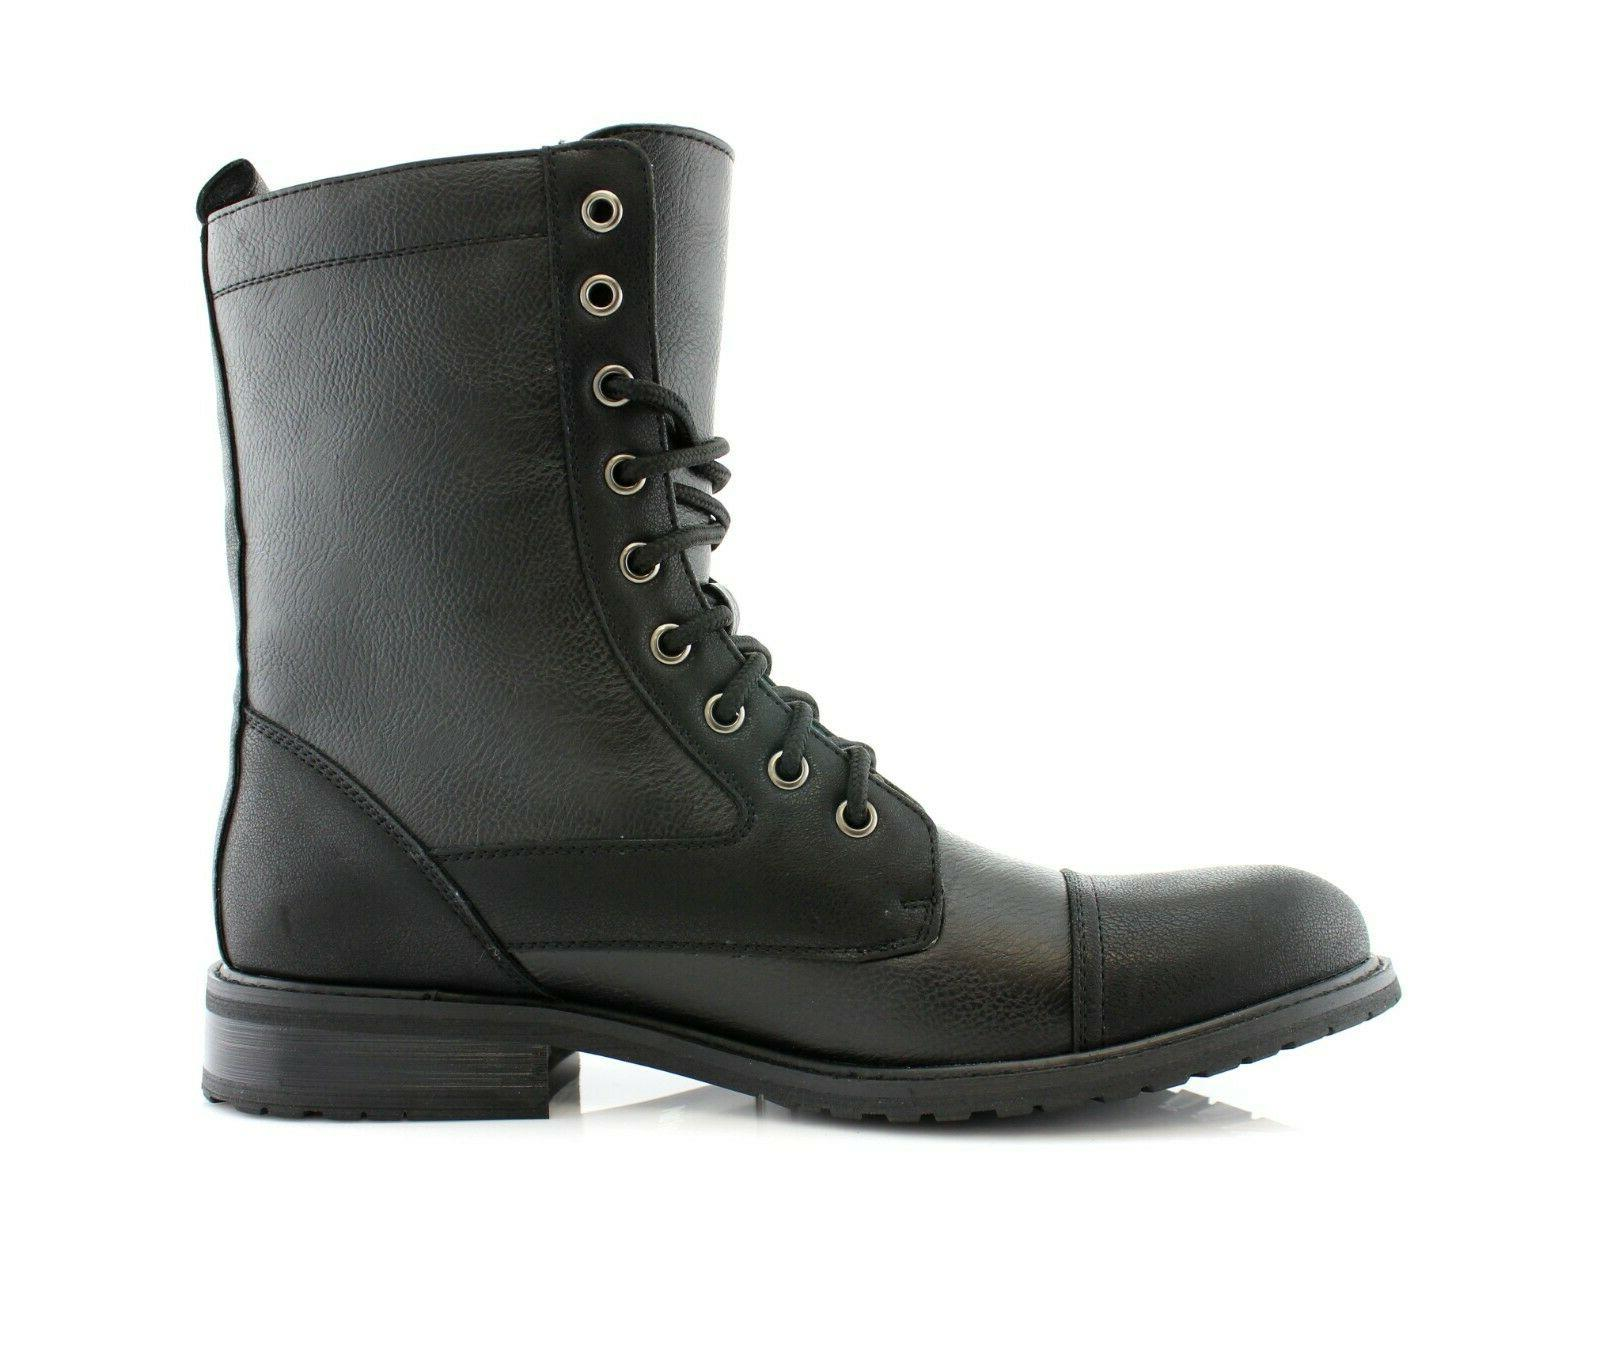 Men's Leather Ankle Motorcycle Combat Dress Boot Shoes